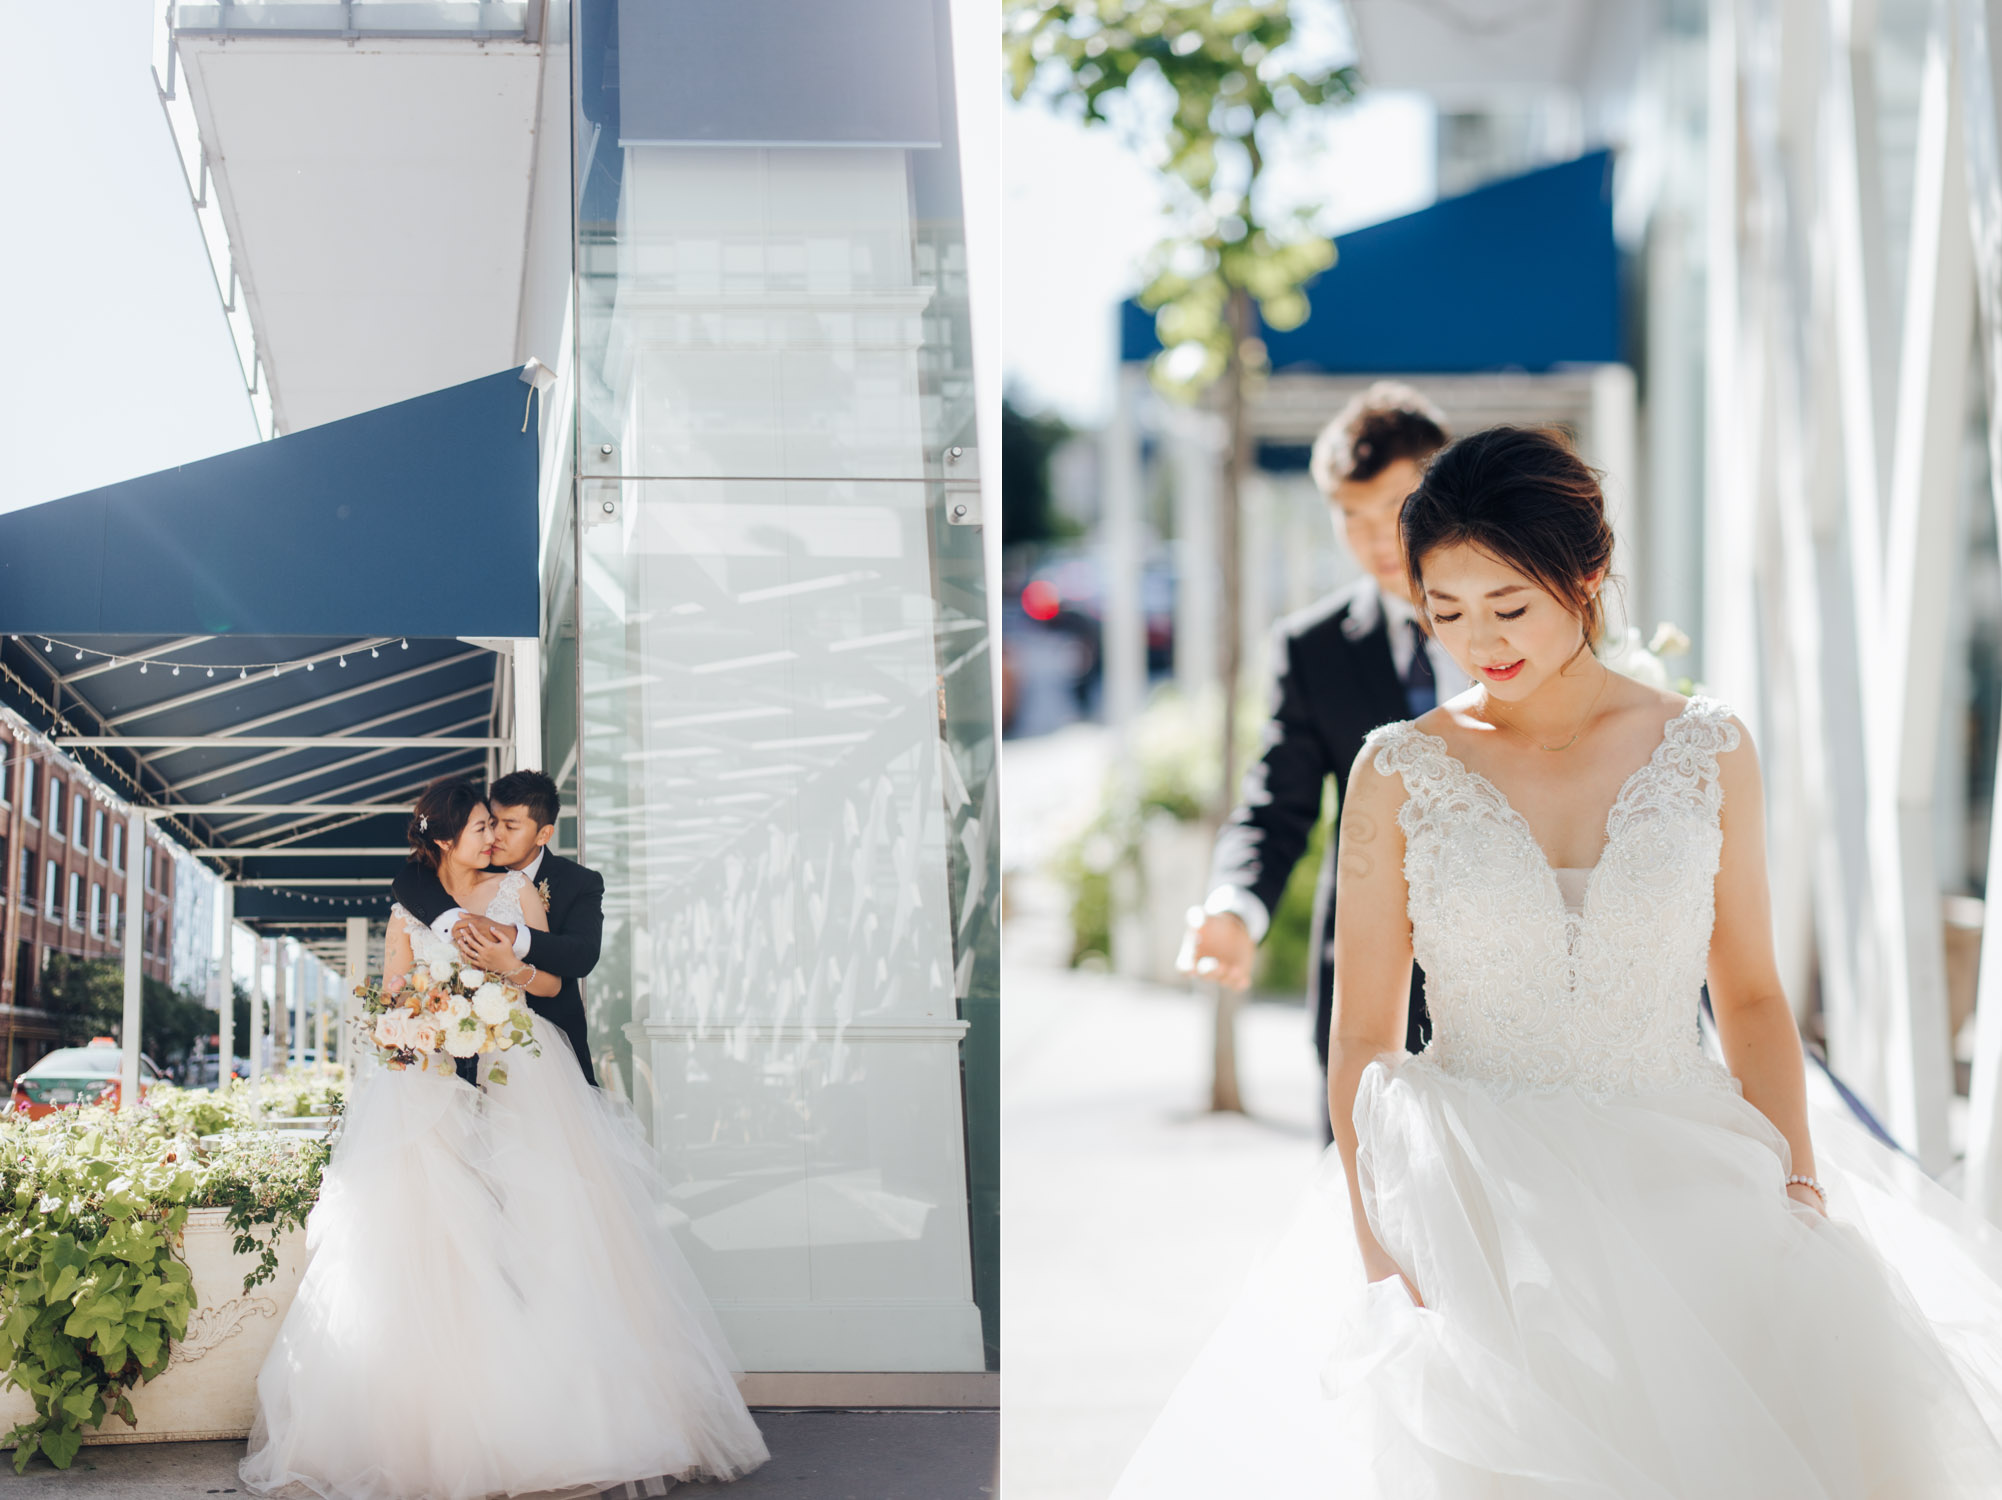 Toronto Colette grand cafe Wedding Bride and Groom Portrait